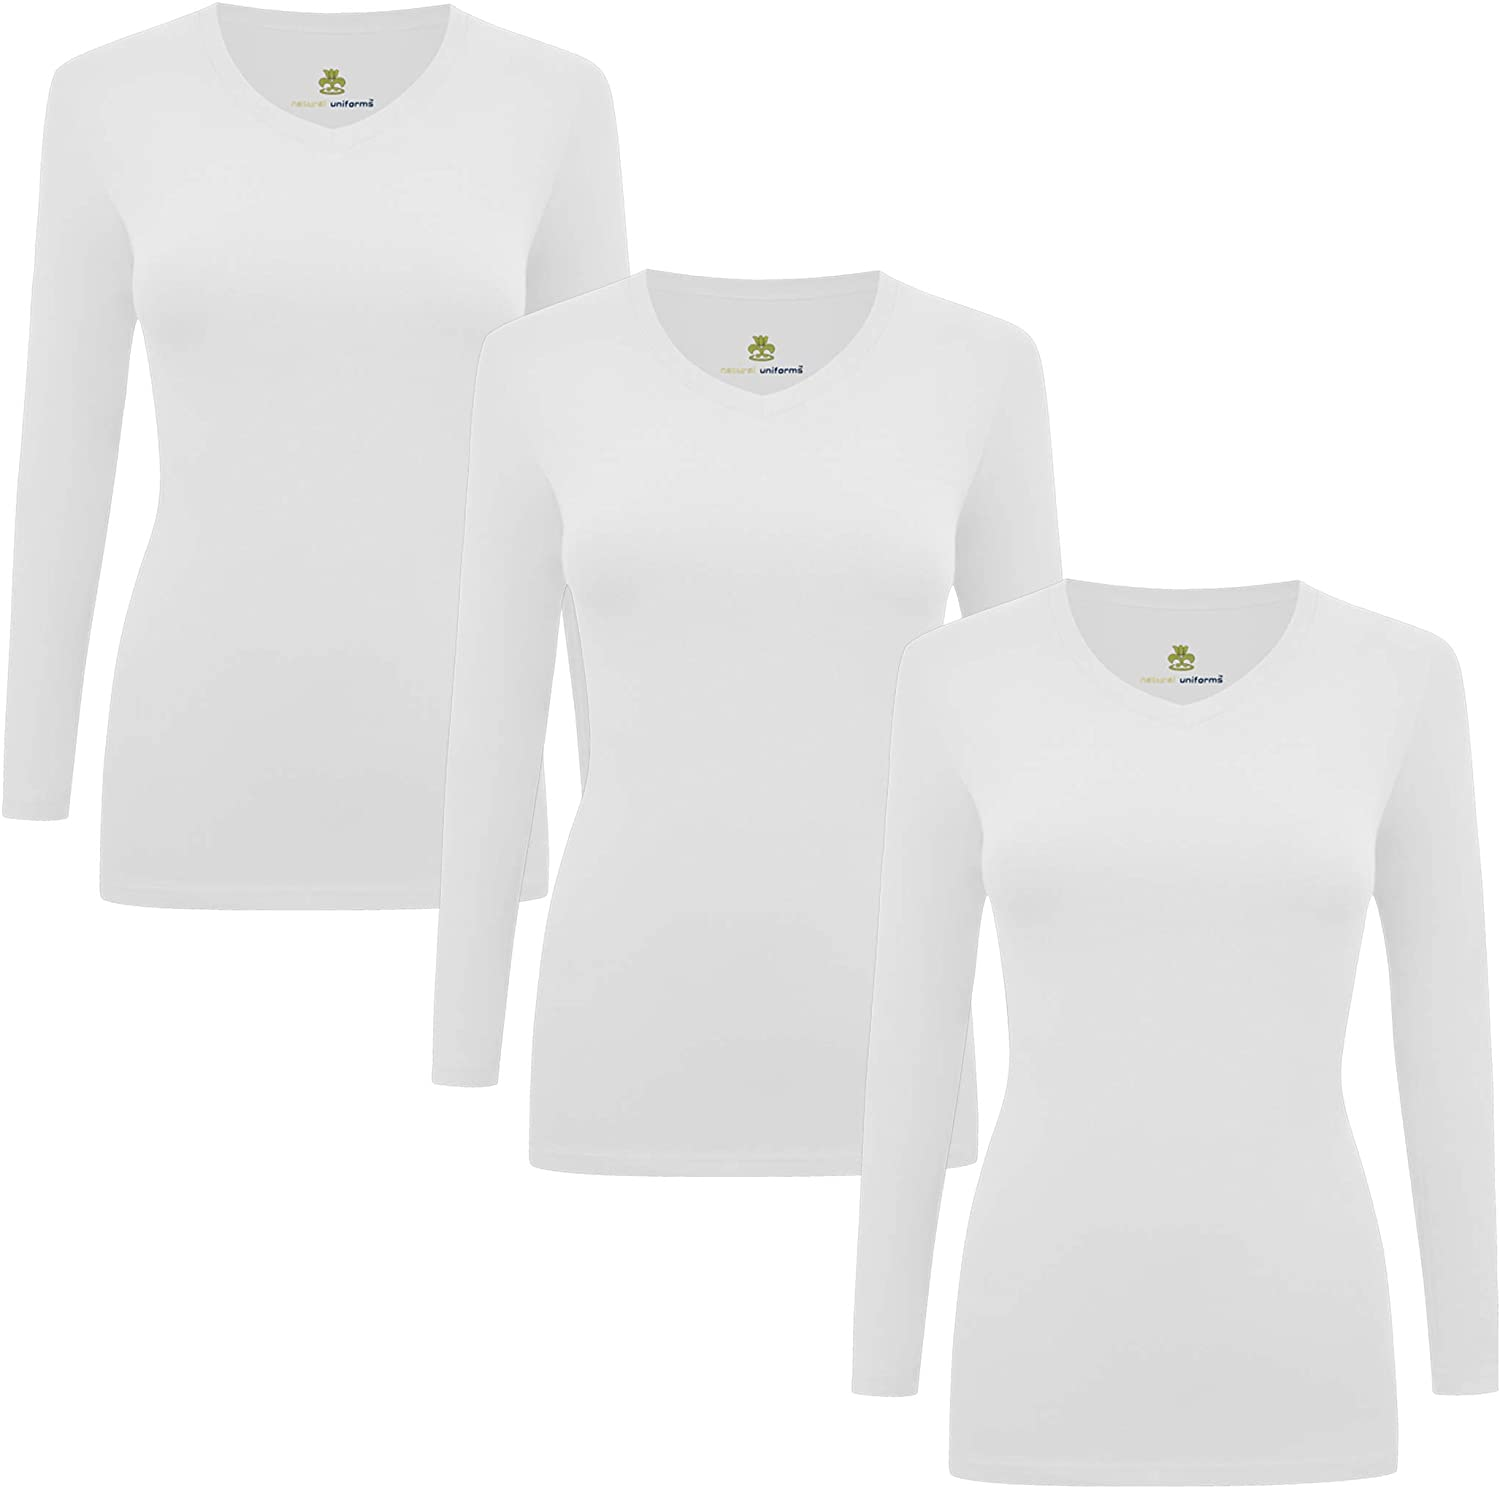 Natural Uniforms Women's Under Scrub Tee V-Neck Long Sleeve T-Shirt Pack of 3 - Multi Pack of 3